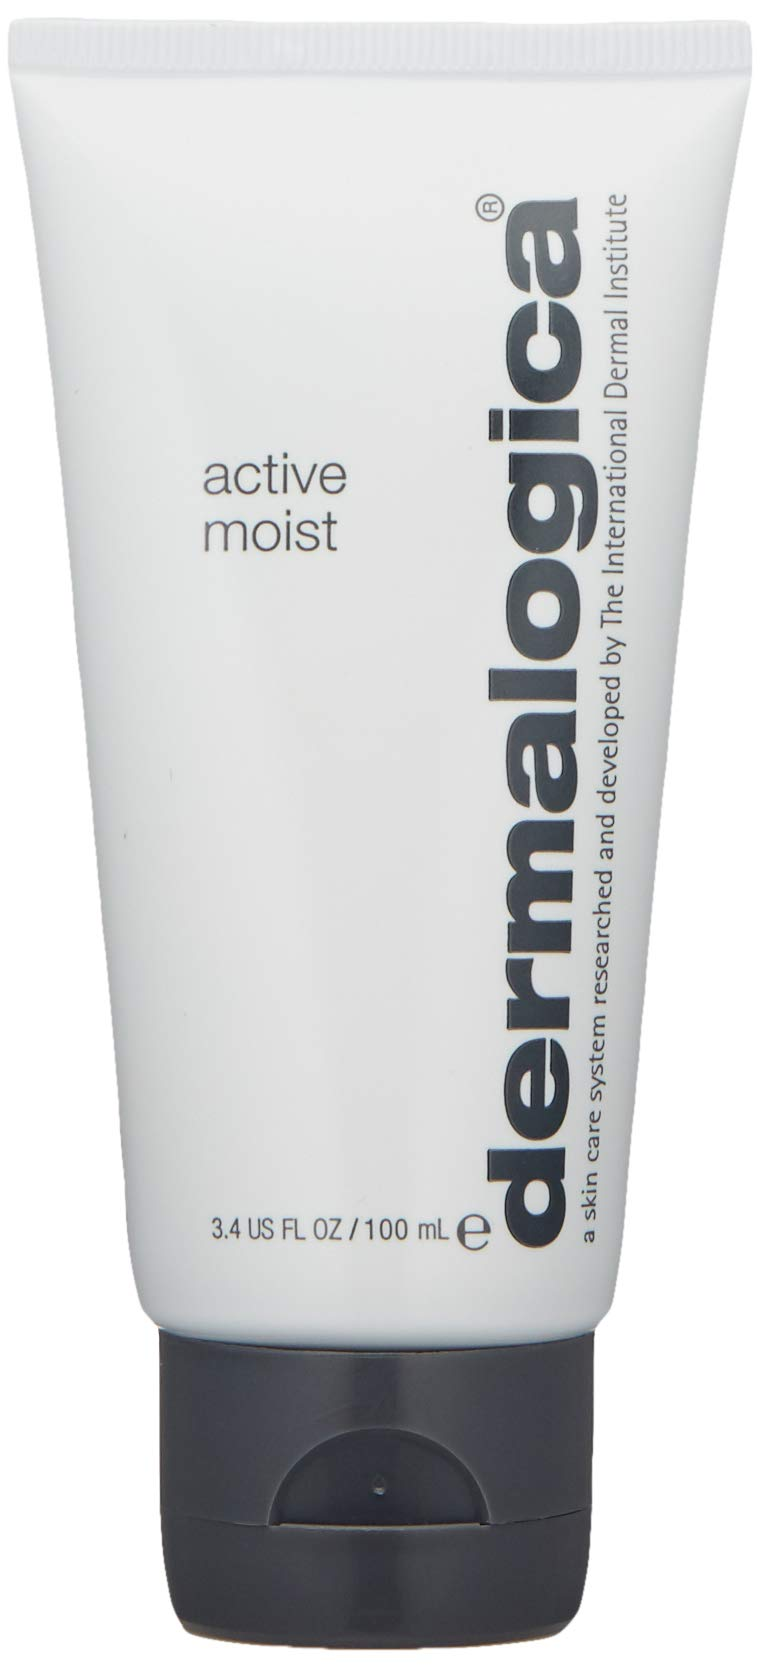 Dermalogica Active Moist, 3.4 Fl Oz by Dermalogica